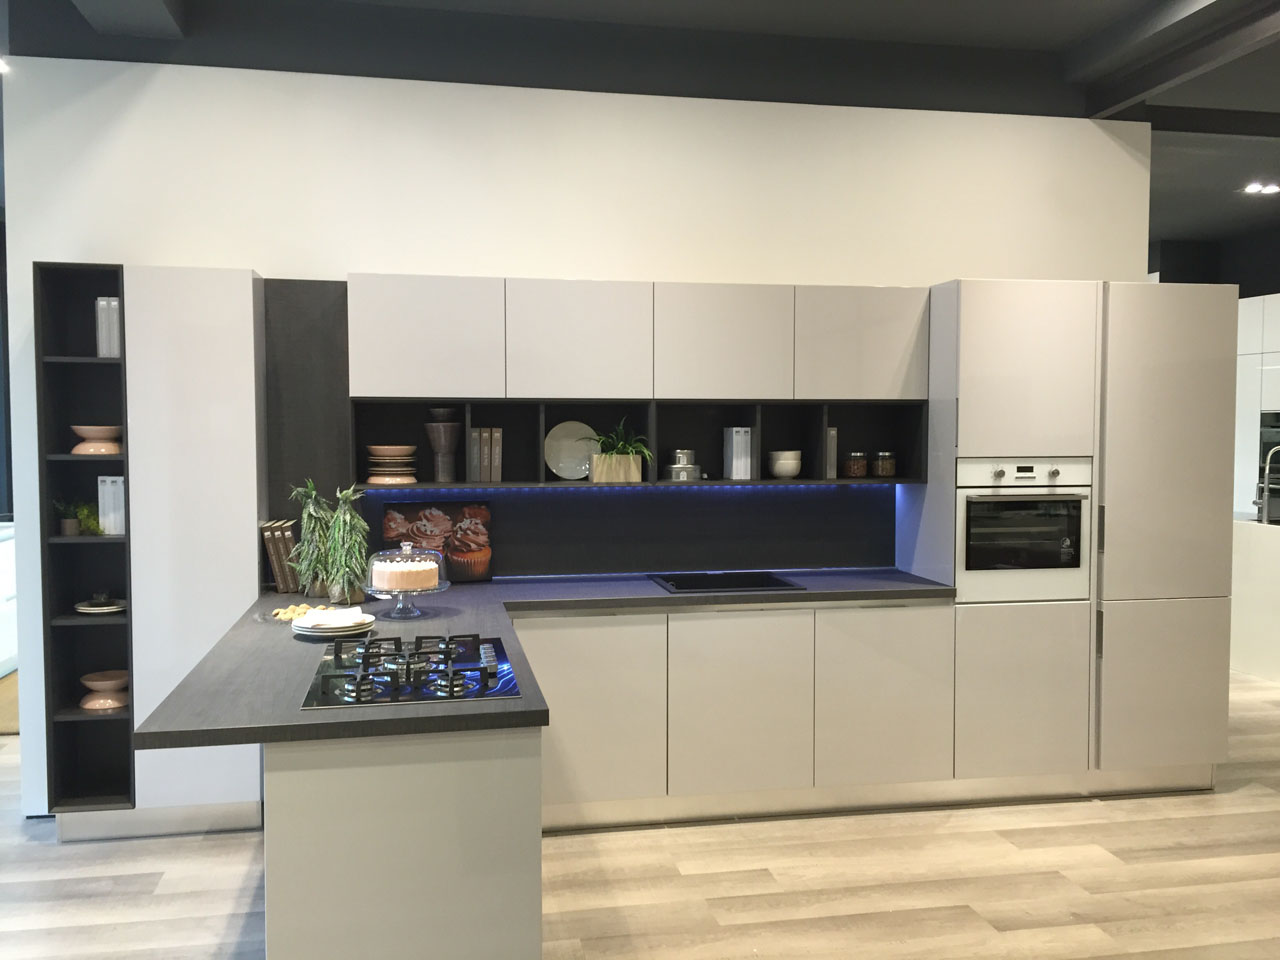 New sales outlet for the cucine lube and creo kitchens brand in